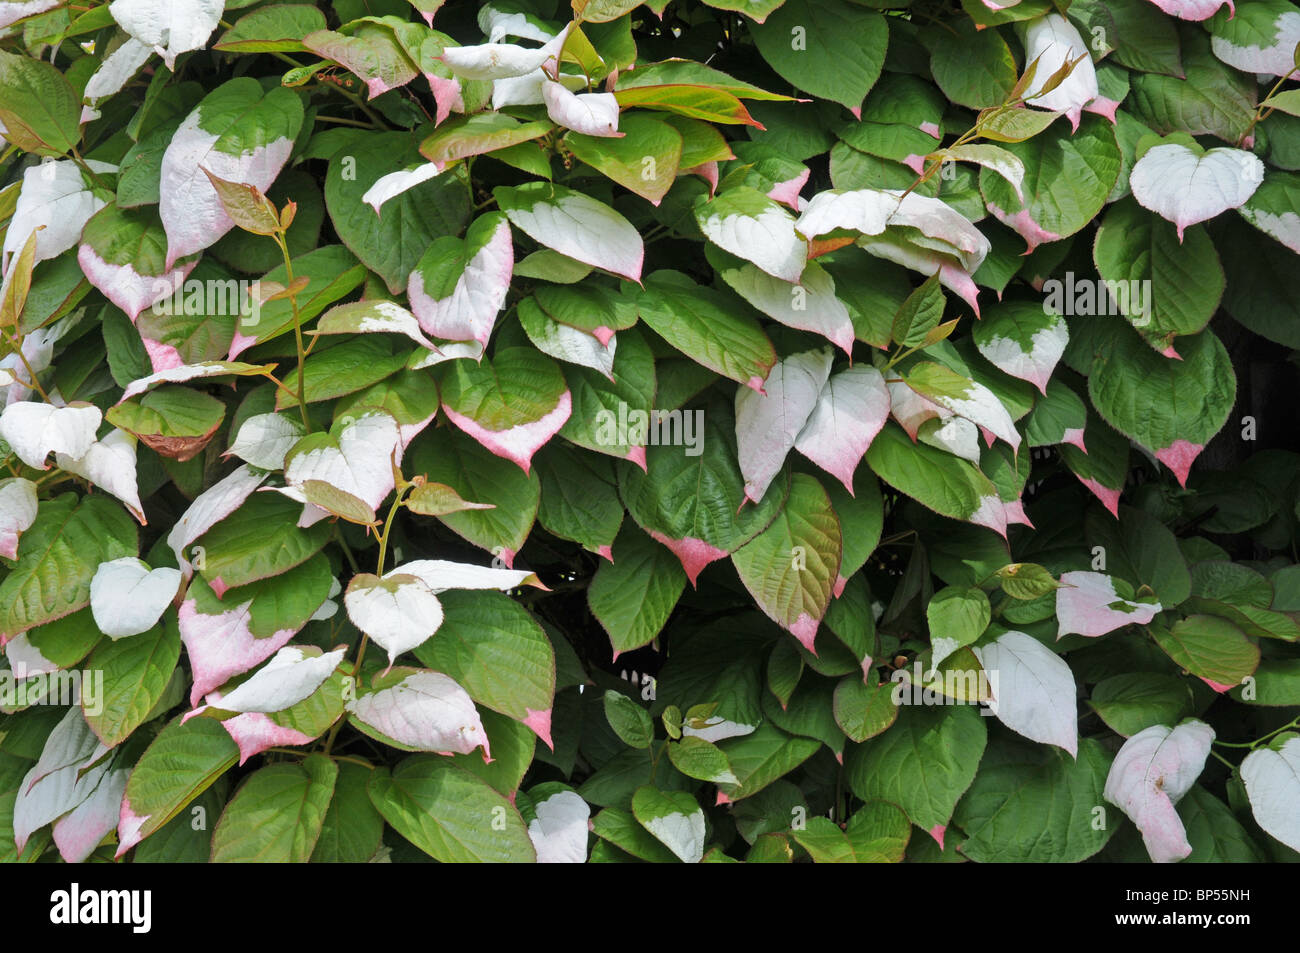 Leaves of Actinidia kolomitka. Emerge with white 'splashes' which become pink. - Stock Image